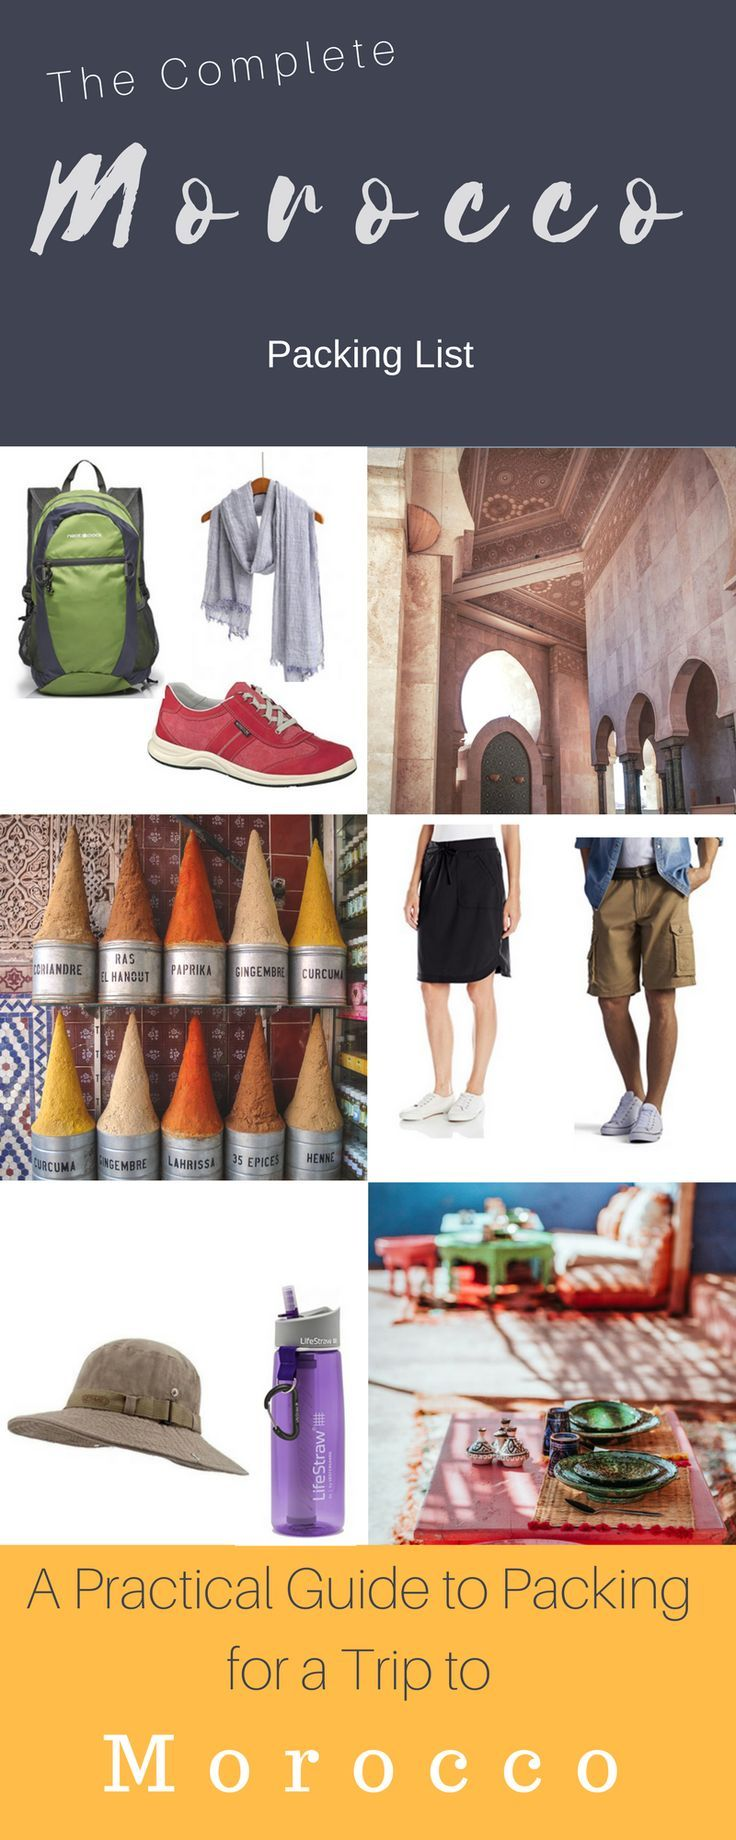 Morocco is unique. A country characterised by its cross-cultural influences and the diversity of experiences it offers the traveller. Packing for Morocco needs to be both practical and respectful of local culture. We have put together a practical packing list for Morocco that covers off on all the travel essentials. #morocco #packing #packinglist